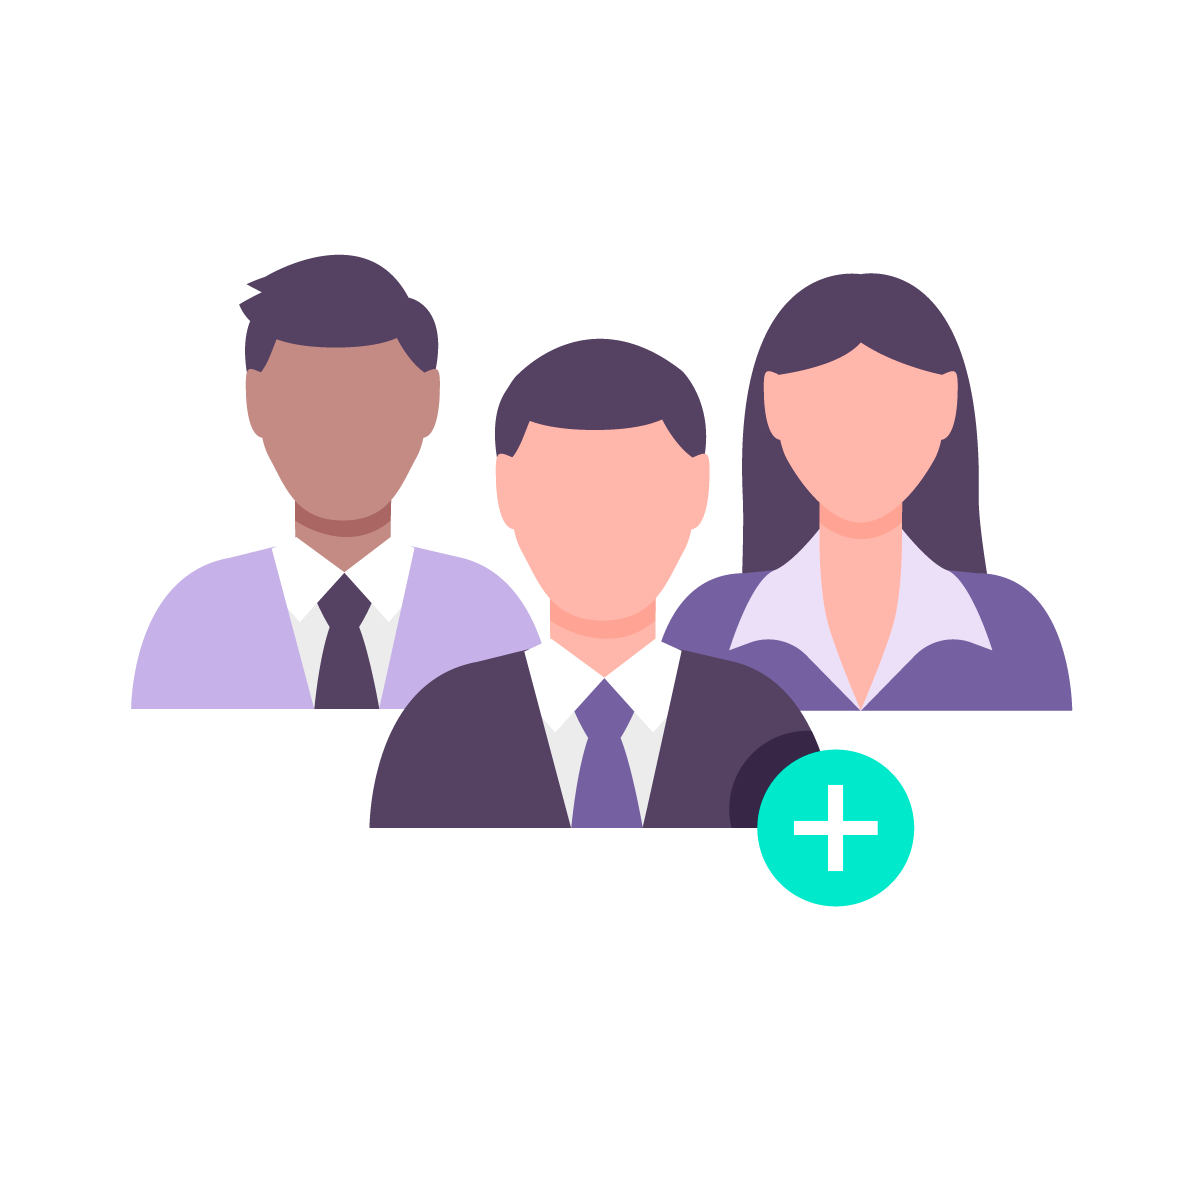 Add team member and assign roles